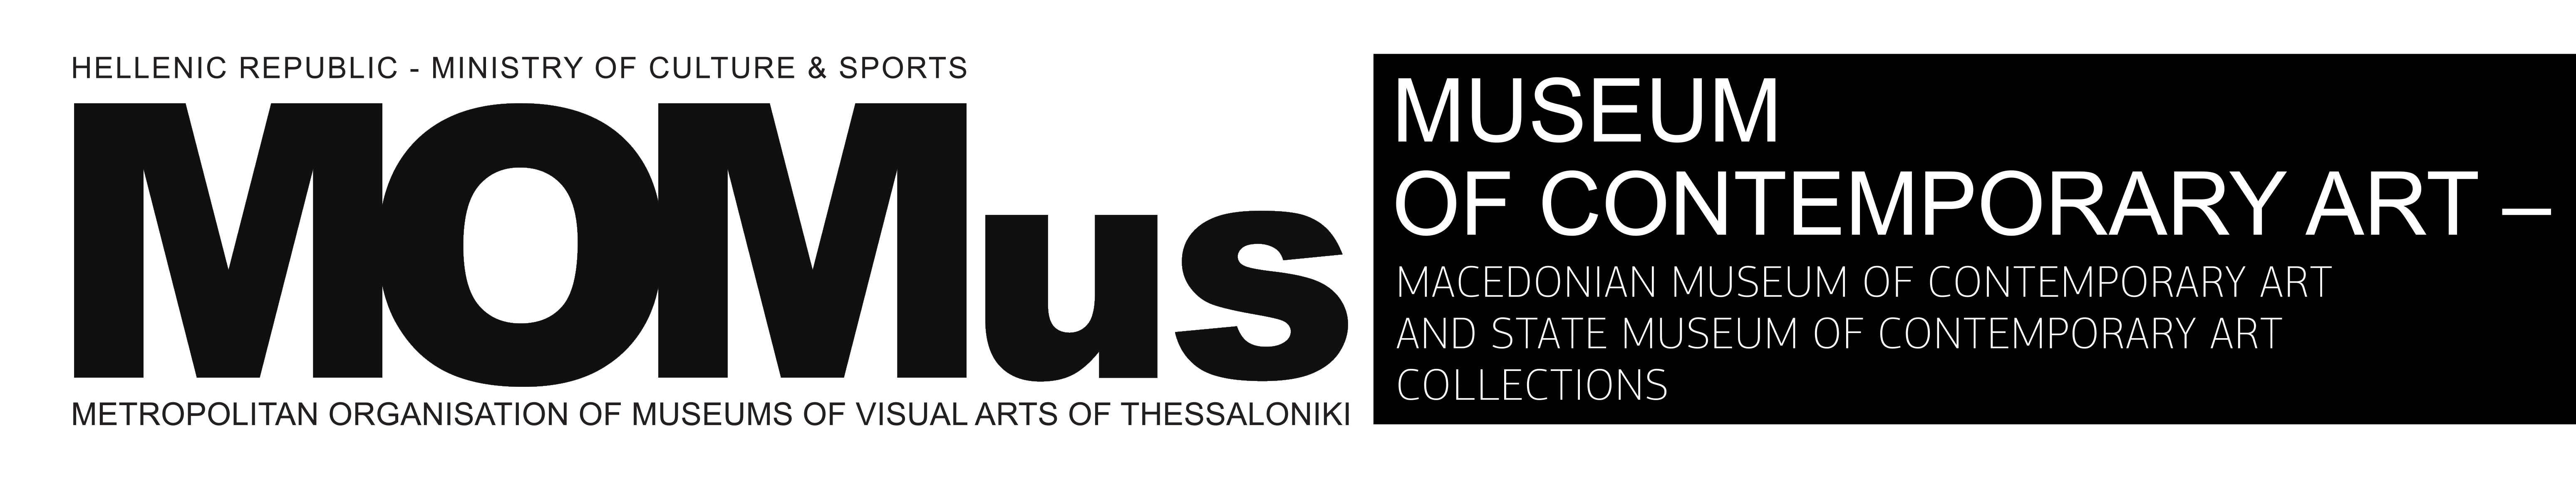 MOMus-Museum of Contemporary Art-Macedonian Museum of Contemporary Art and State Museum of Contemporary Art Collections